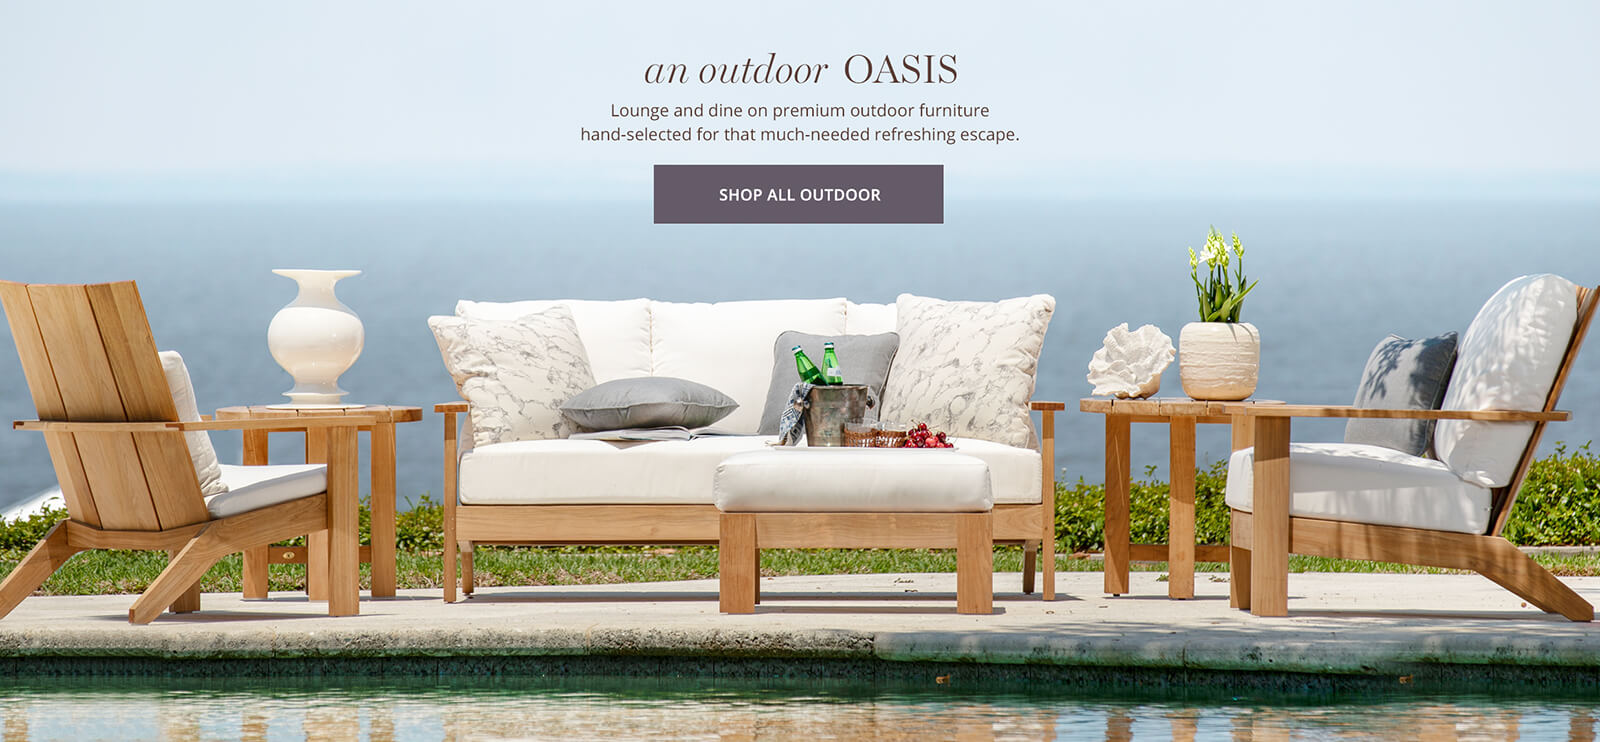 An Outdoor Oasis